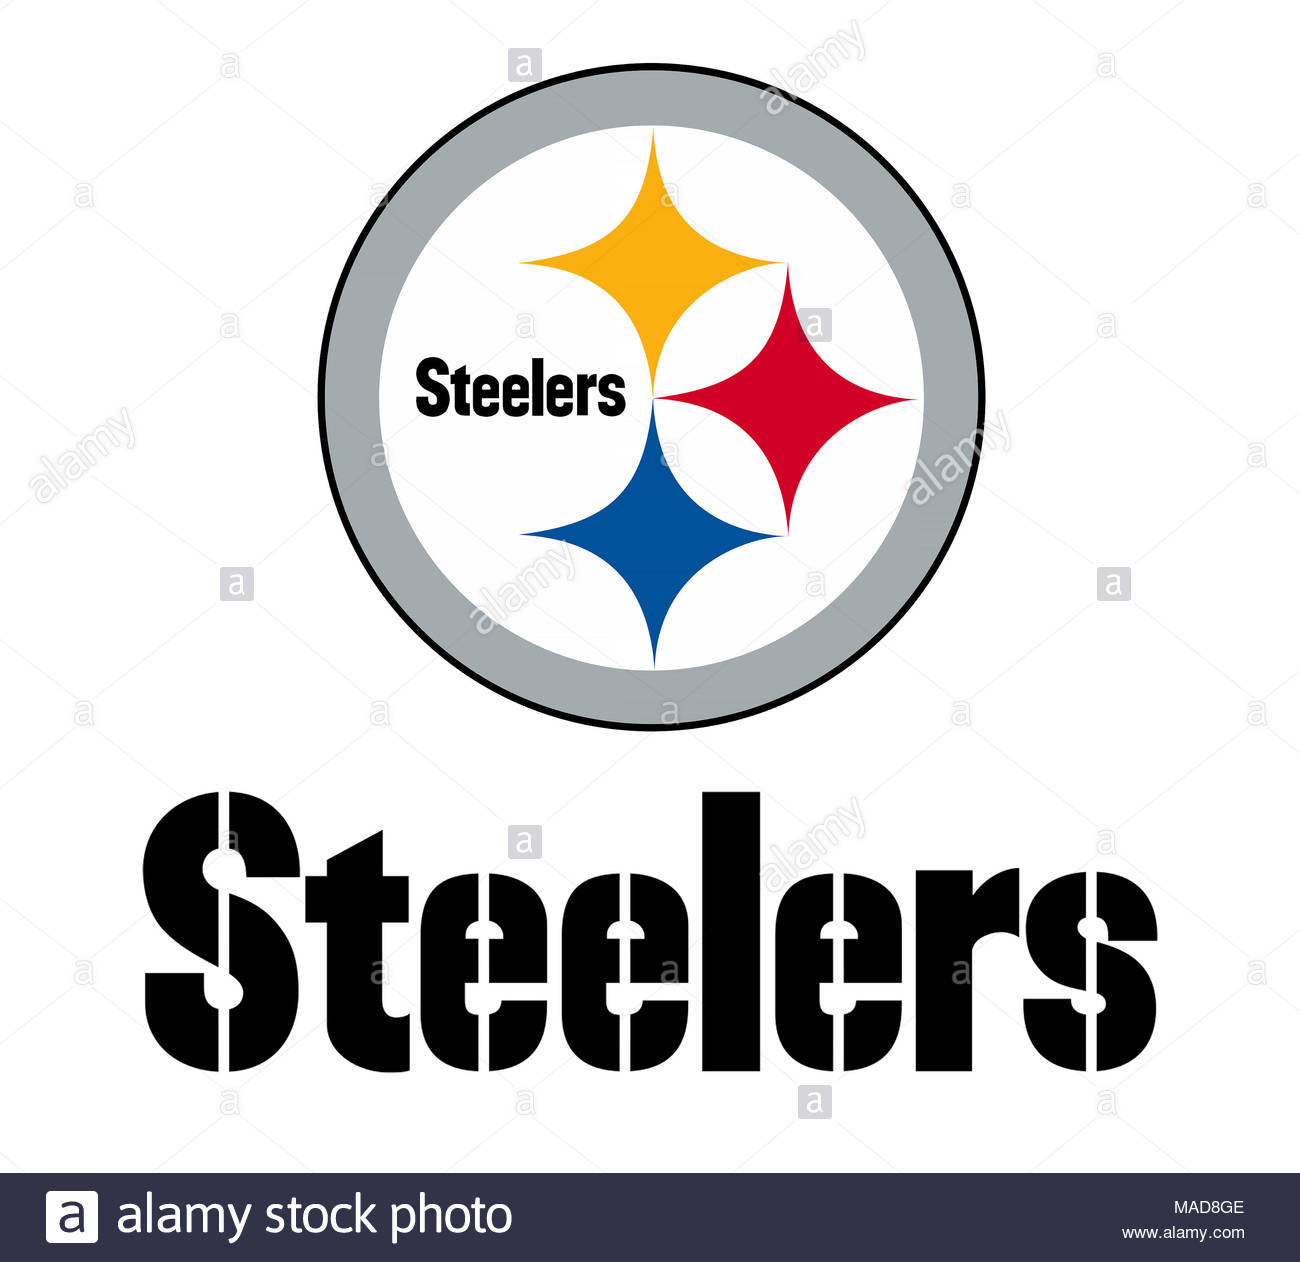 pittsburgh steelers logo icon stock photo 178542350 alamy rh alamy com pittsburgh steelers logos and designs pittsburgh steelers logos and designs